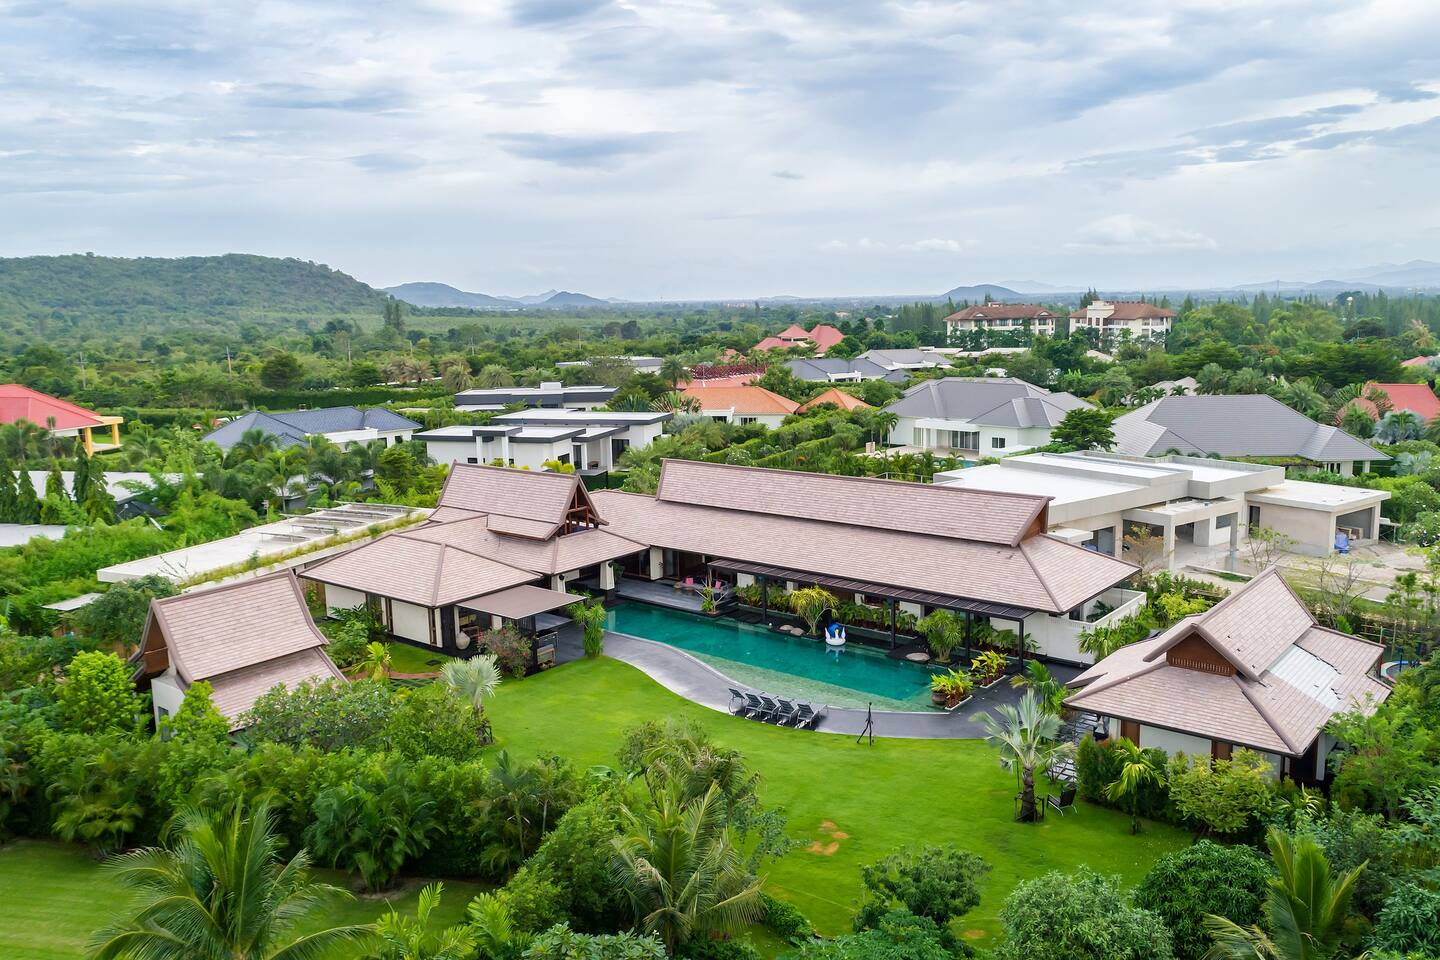 Baan Ing Phu village, 6 bedrooms